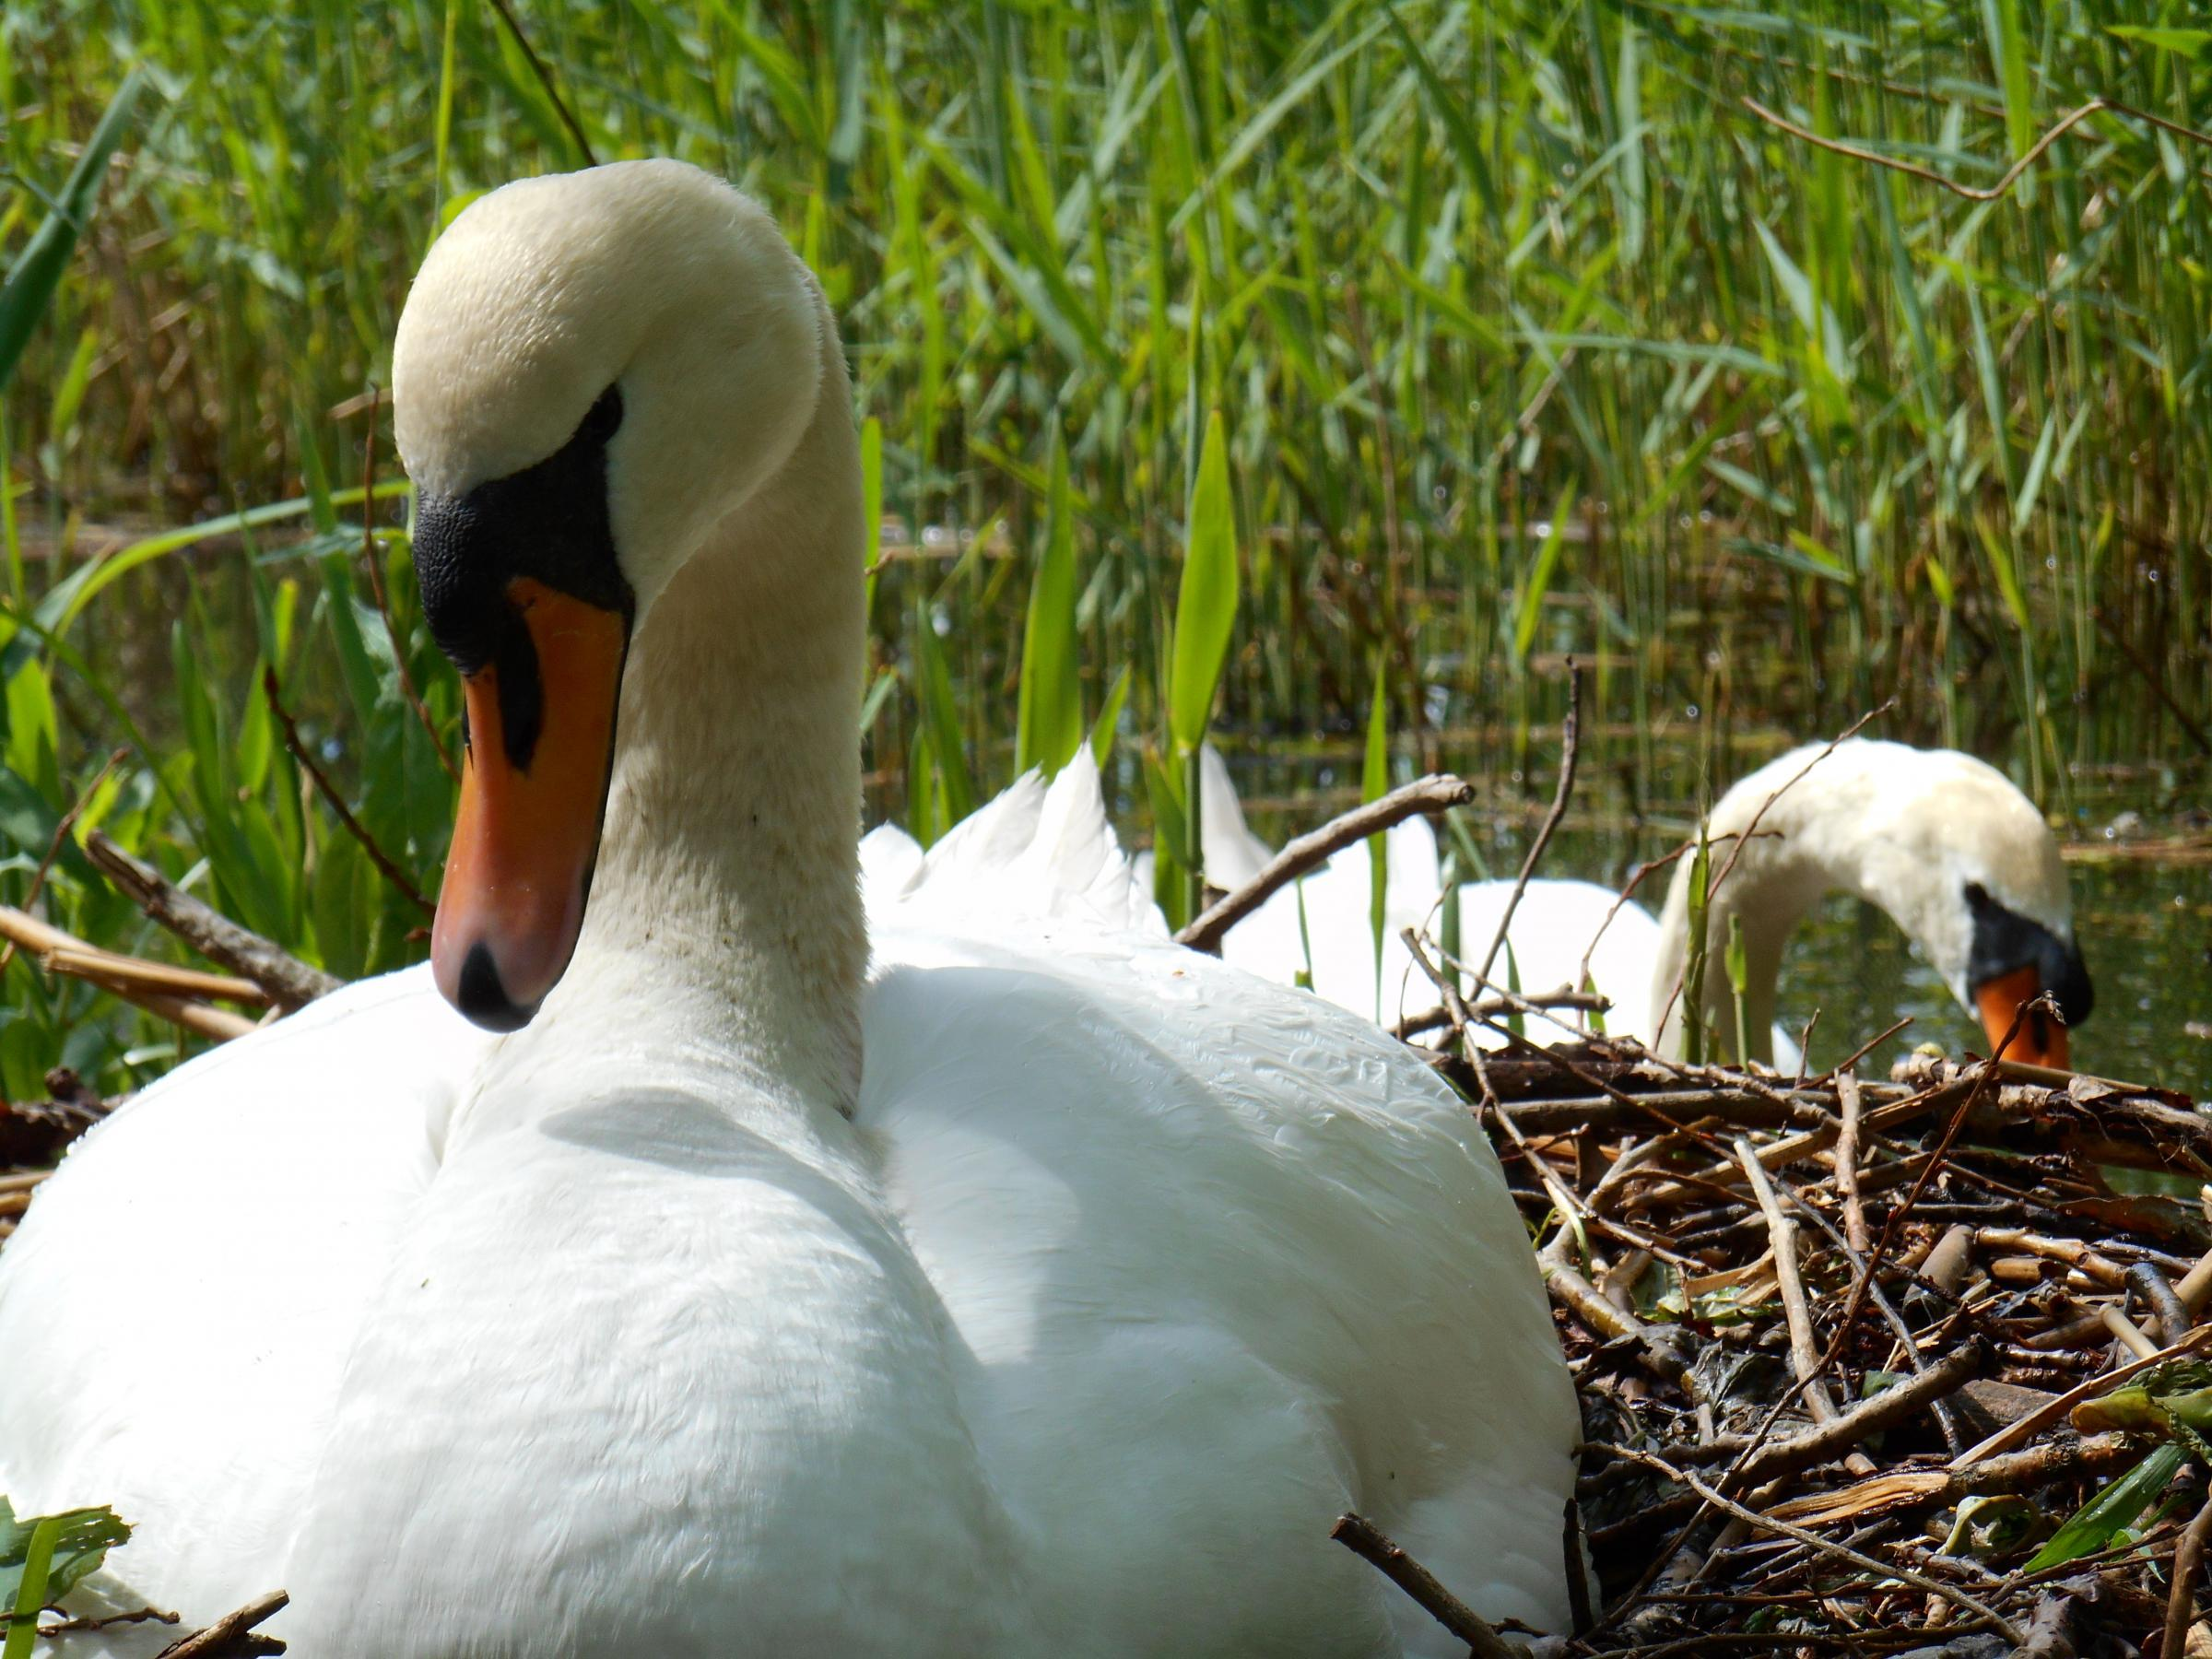 The female on the nest with the male swan in the background in a photo taken before the male and eggs were taken. Picture by Darren Moston